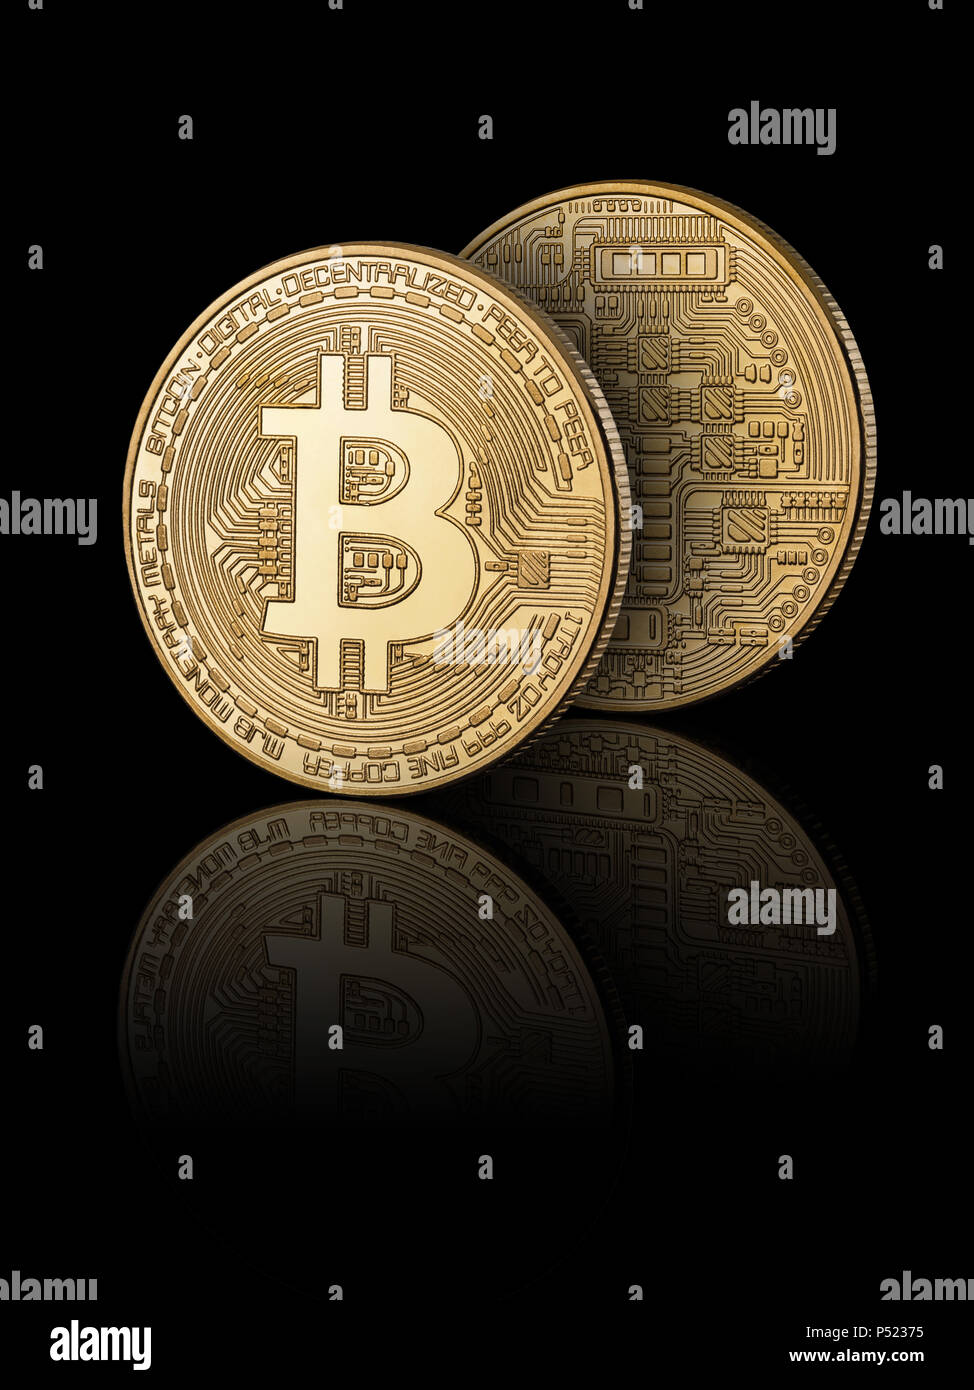 Bitcoin on black background with reflection  Obverse and reverse